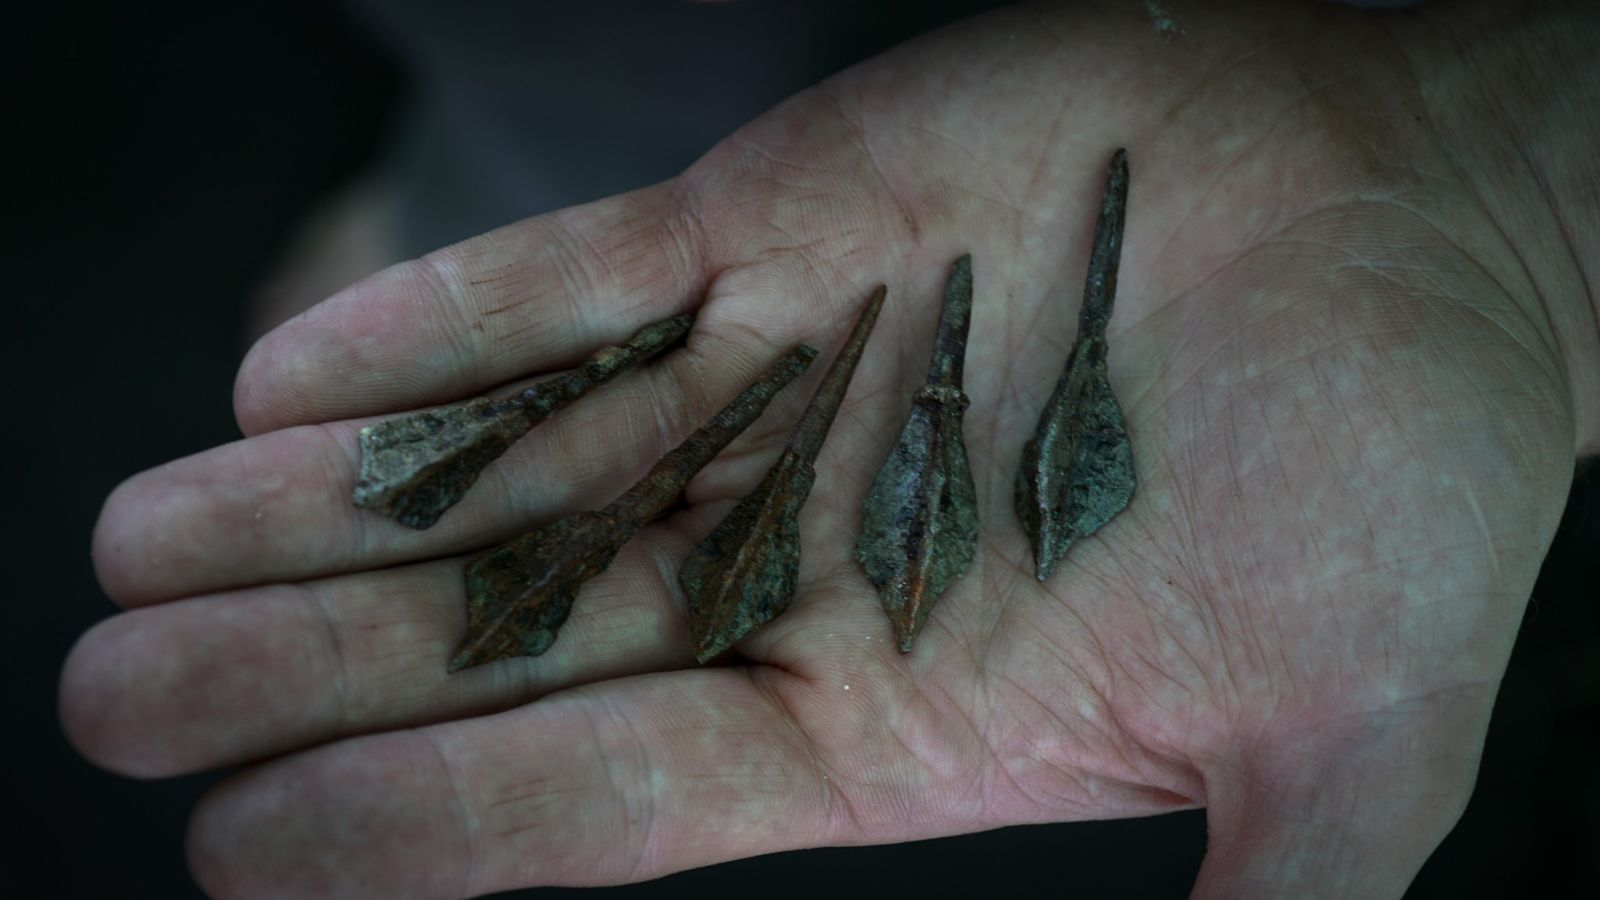 Five iron arrowheads from Burial 33 in the Tunnug 1 graveyard. They were likely stored in ...